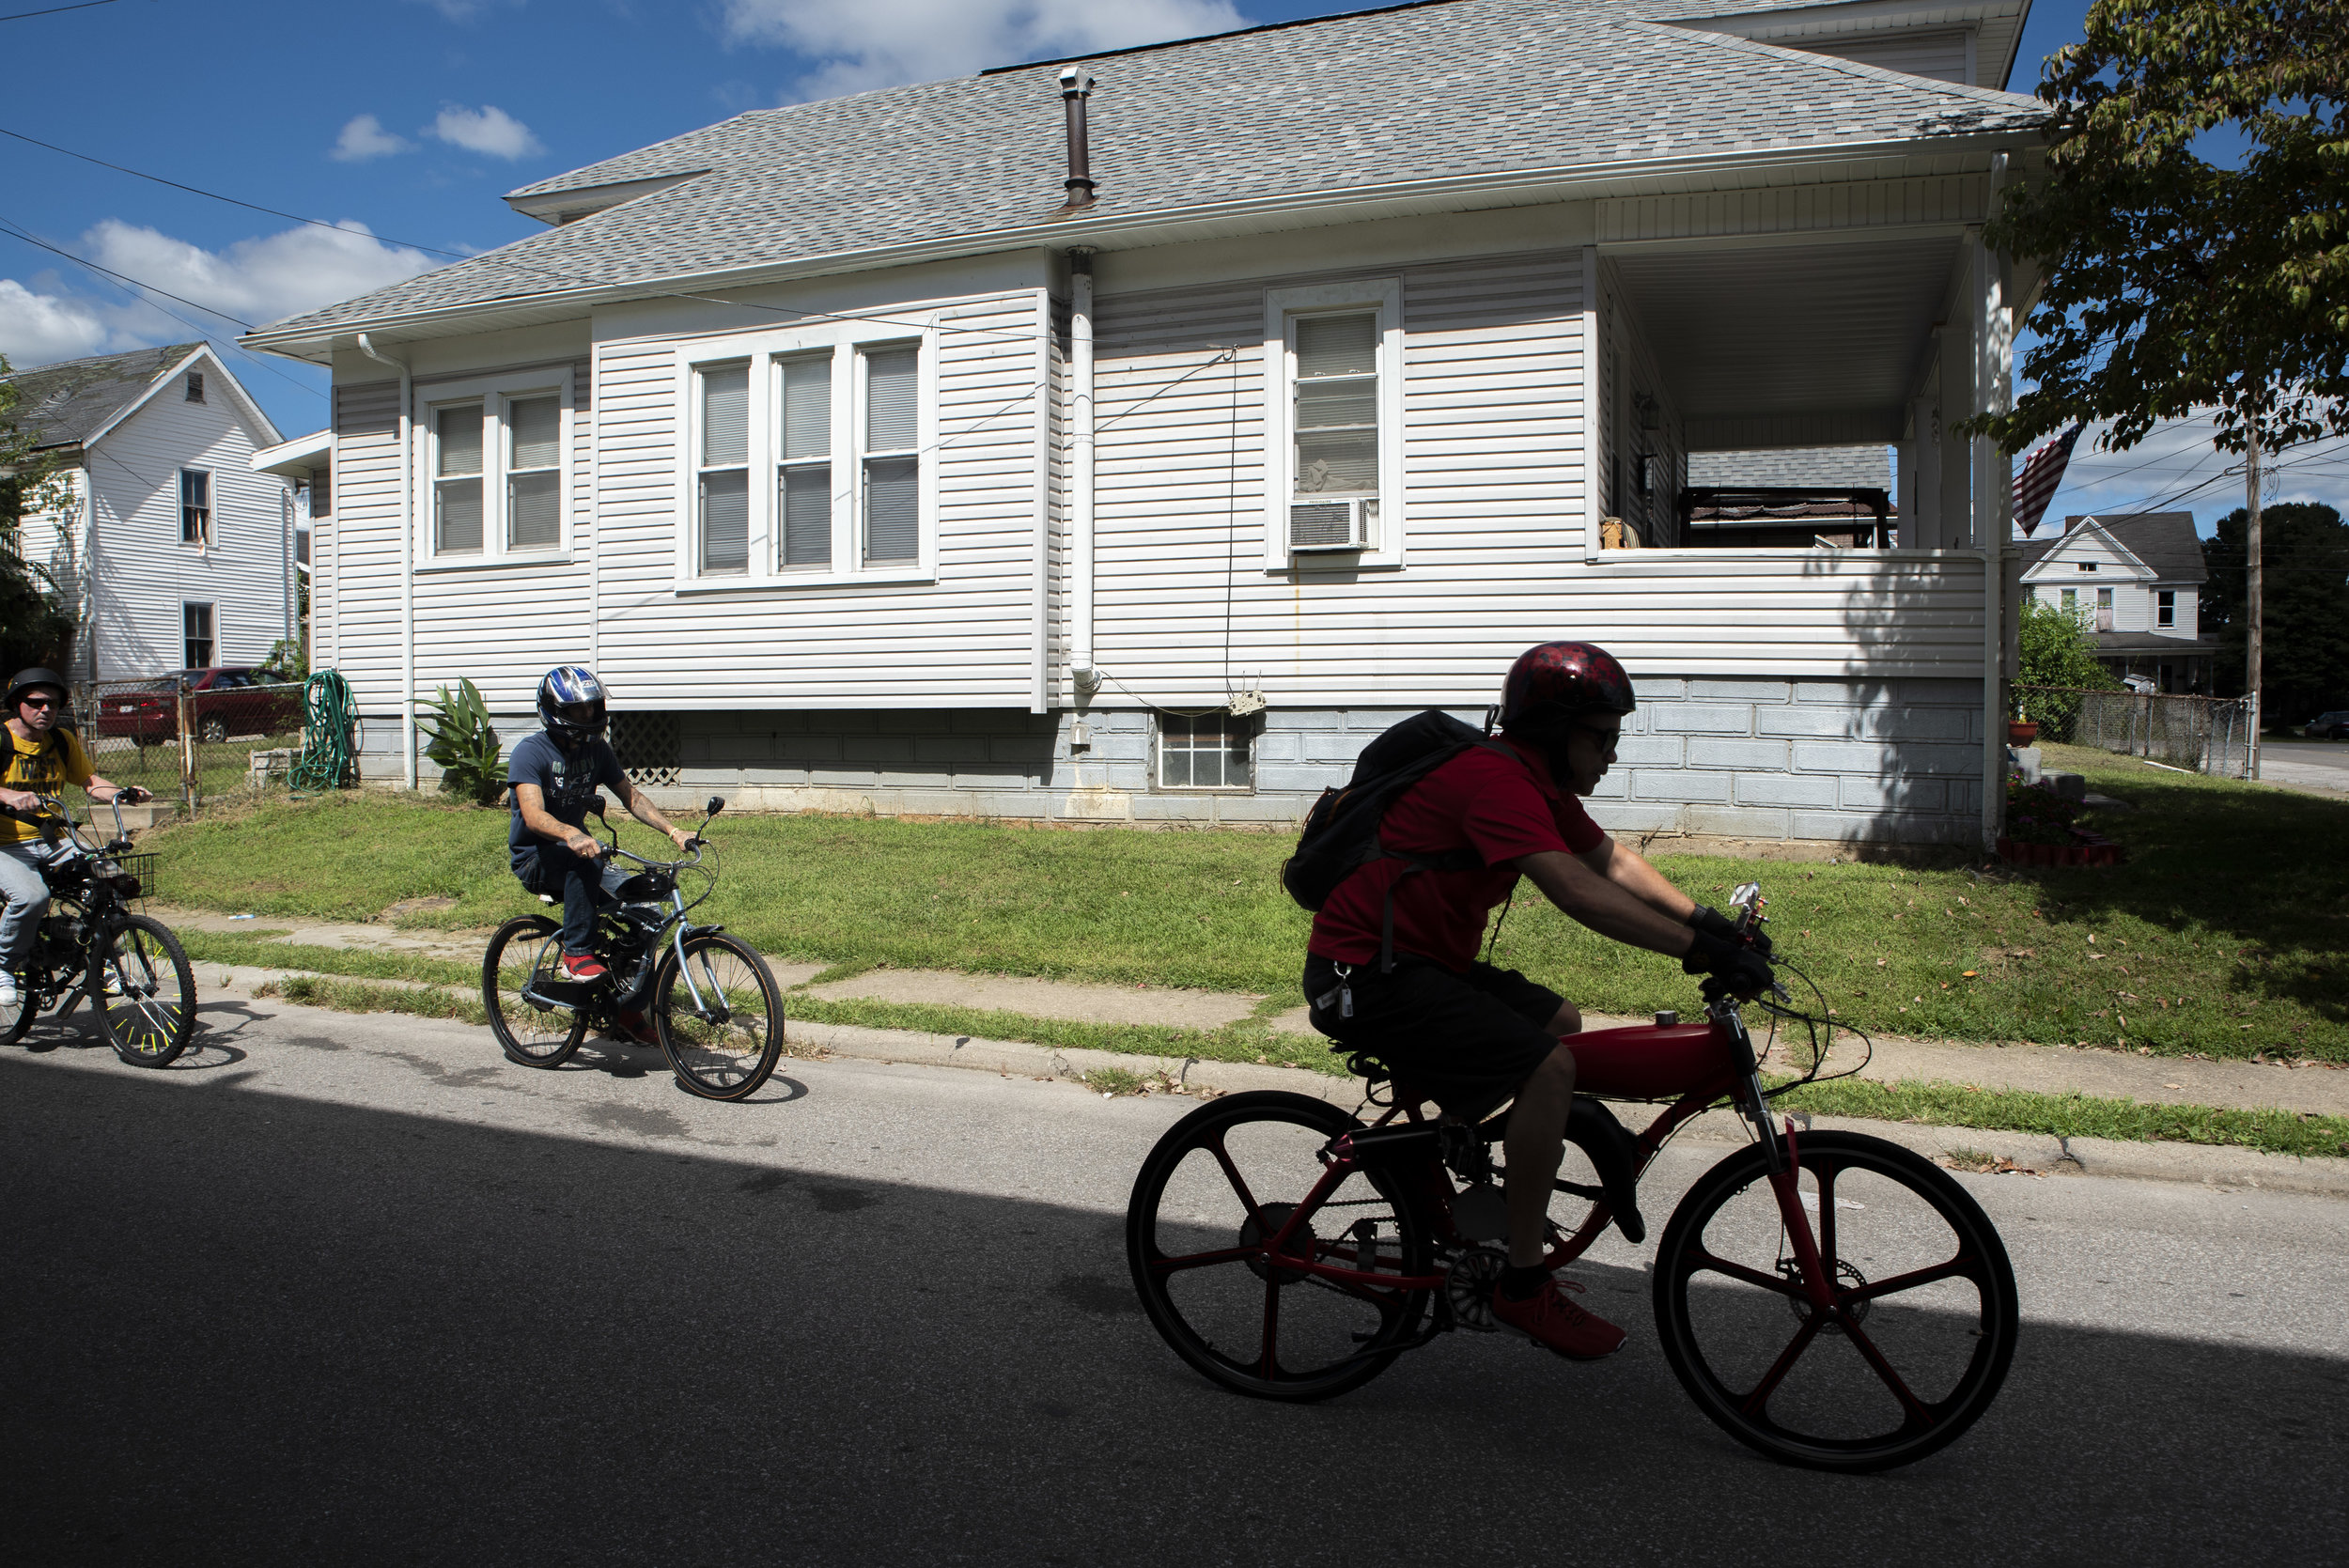 (from left to right) Steve Ramsey, Dale Akers and Rex begin to accelerate their motorized bicycles to prepare for a ride around the City of Parkersburg.